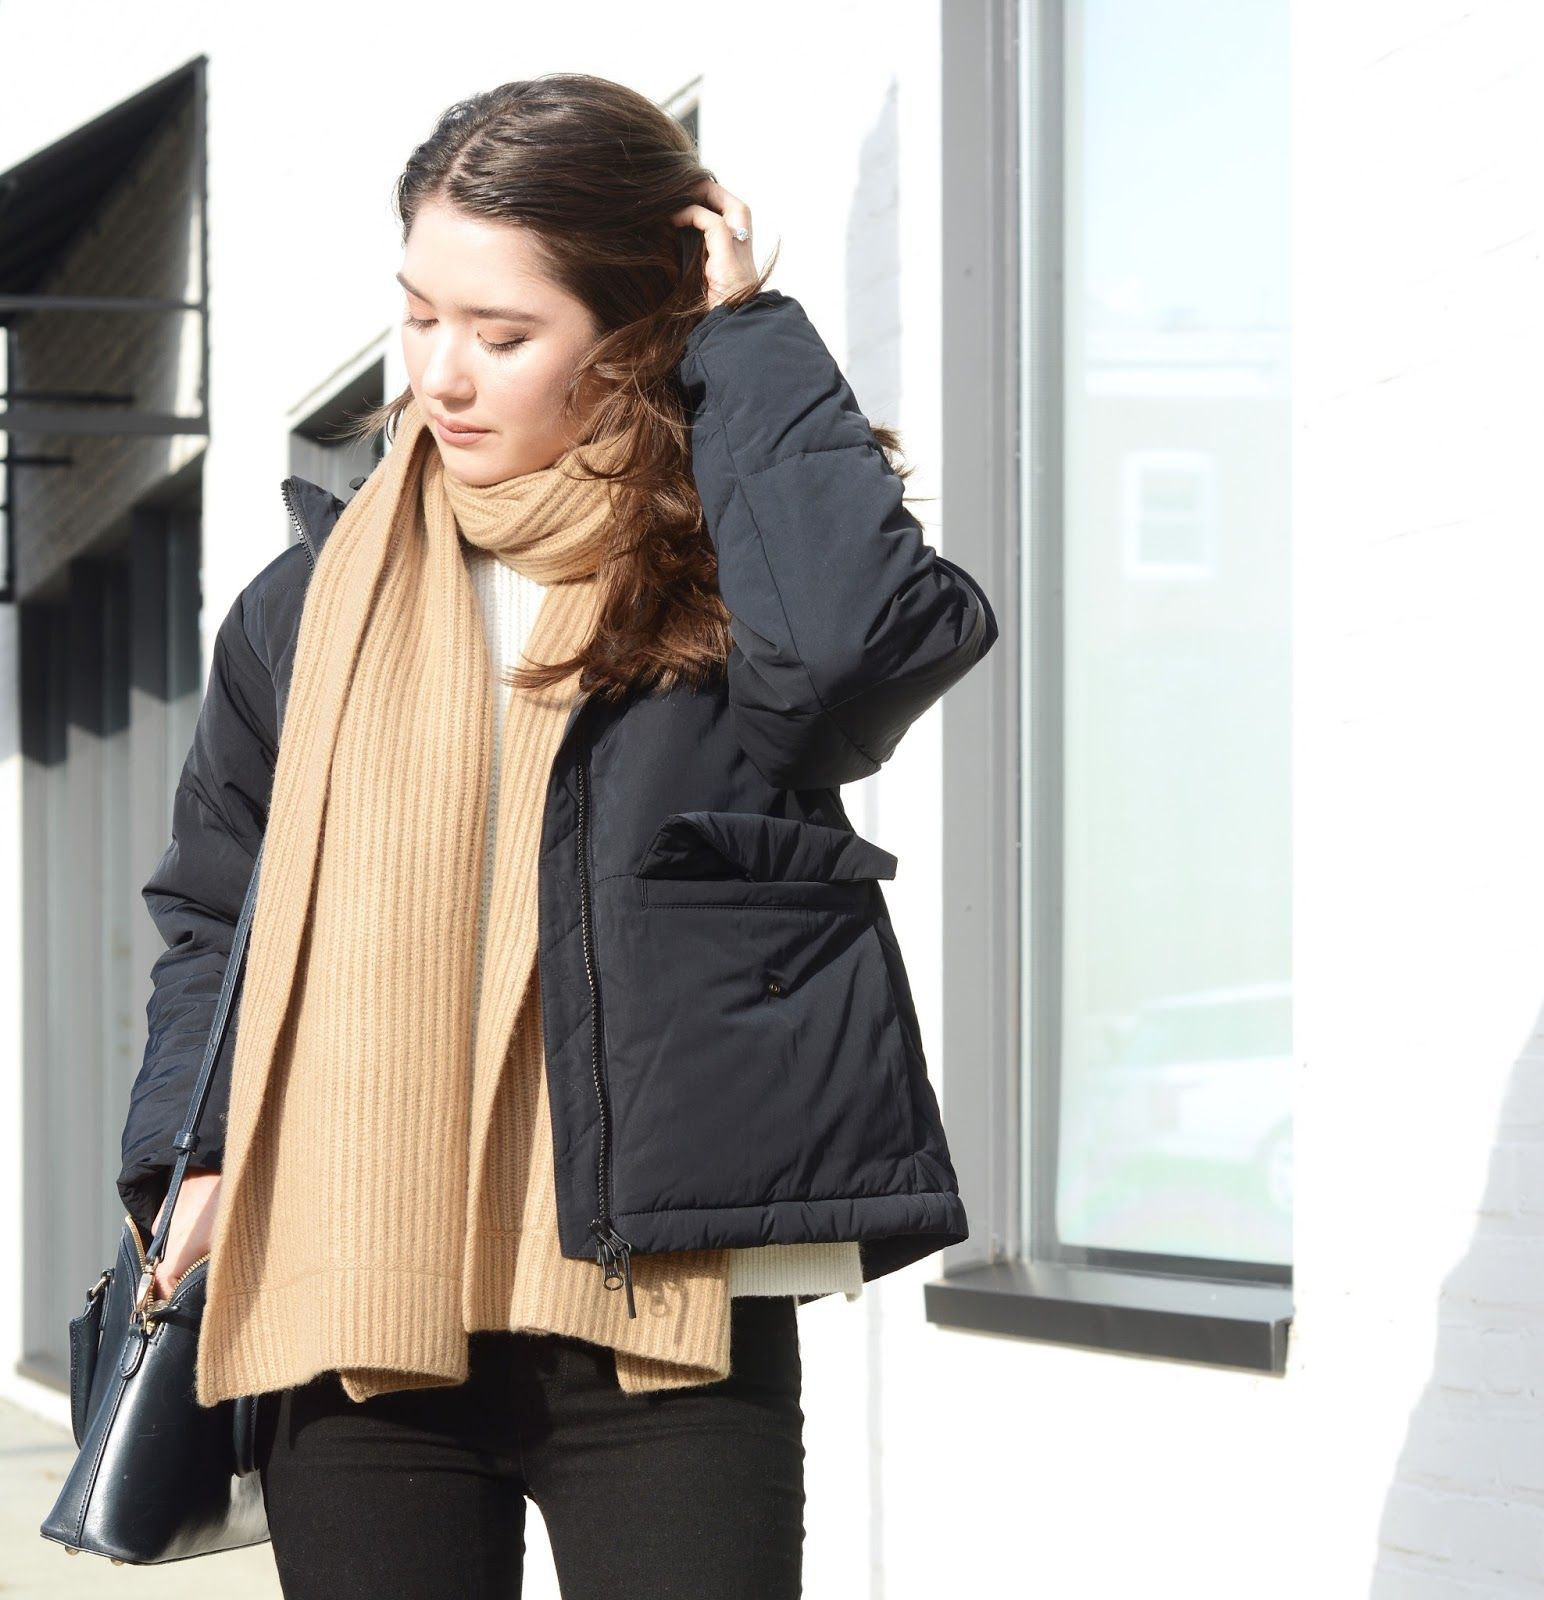 517678d5580 Everlane Short Puffer Jacket Review Photos Sizing Fit Petite